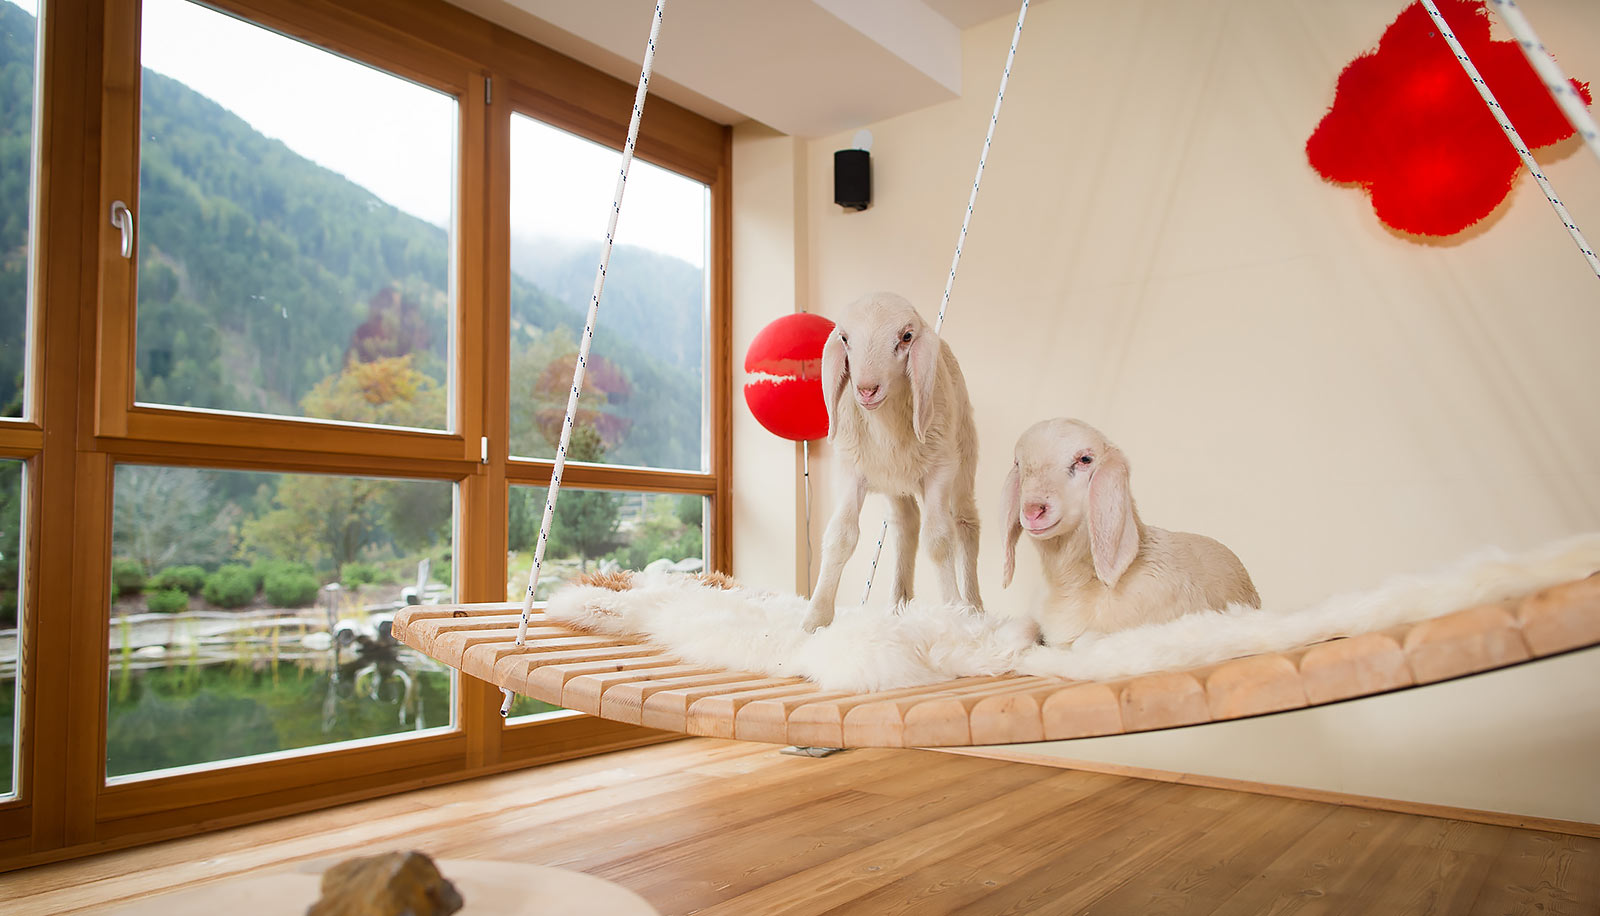 Two lambs on a swinging wooden bed with fur blanket in front of a window at Arosea Life Balance Hotel in Ultental-Val d'Ultimo